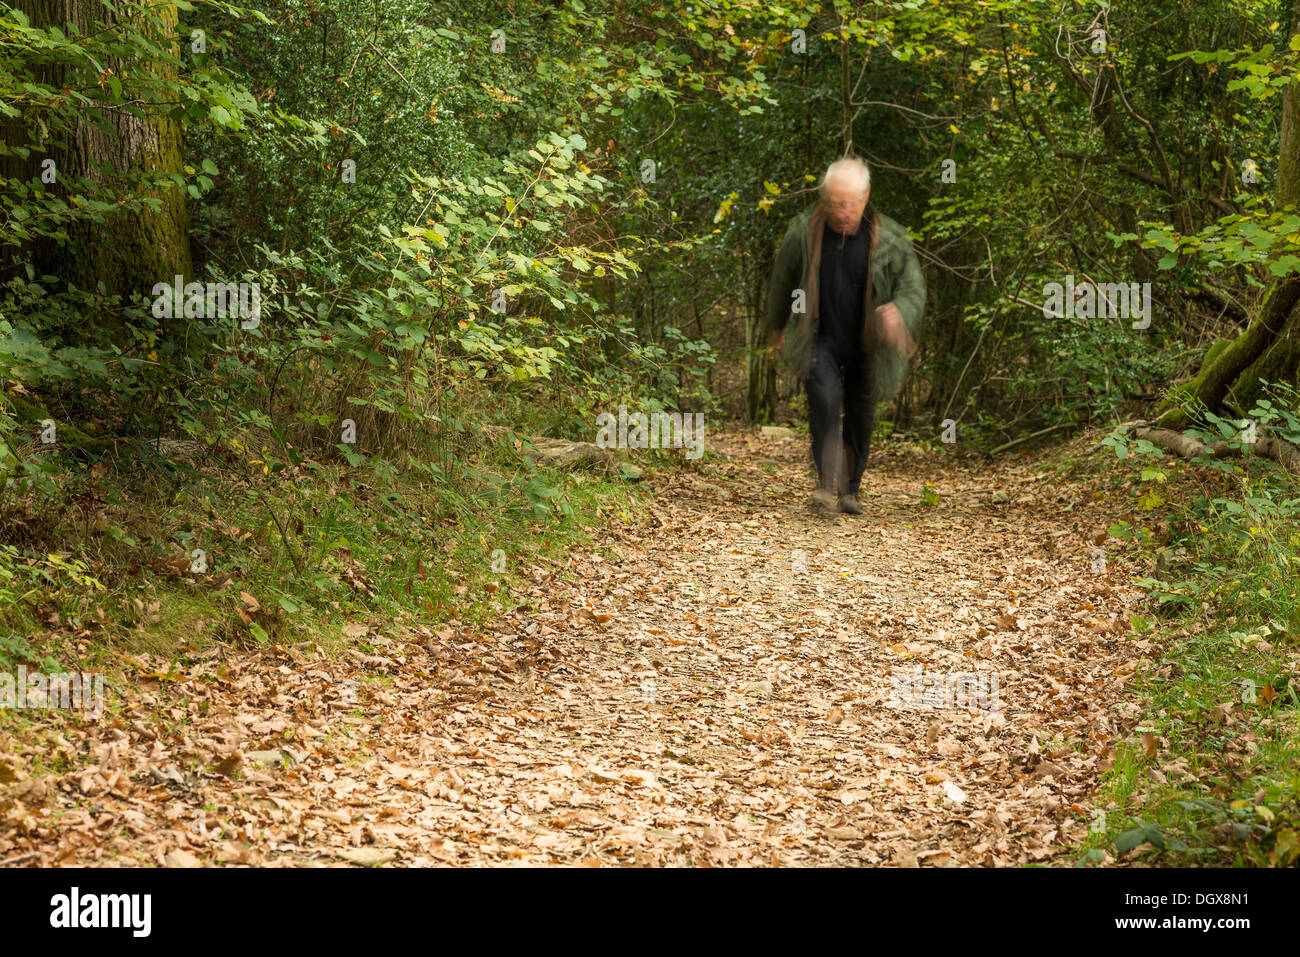 White or silver haired senior citizen in a hurry along a woodland path. - Stock Image